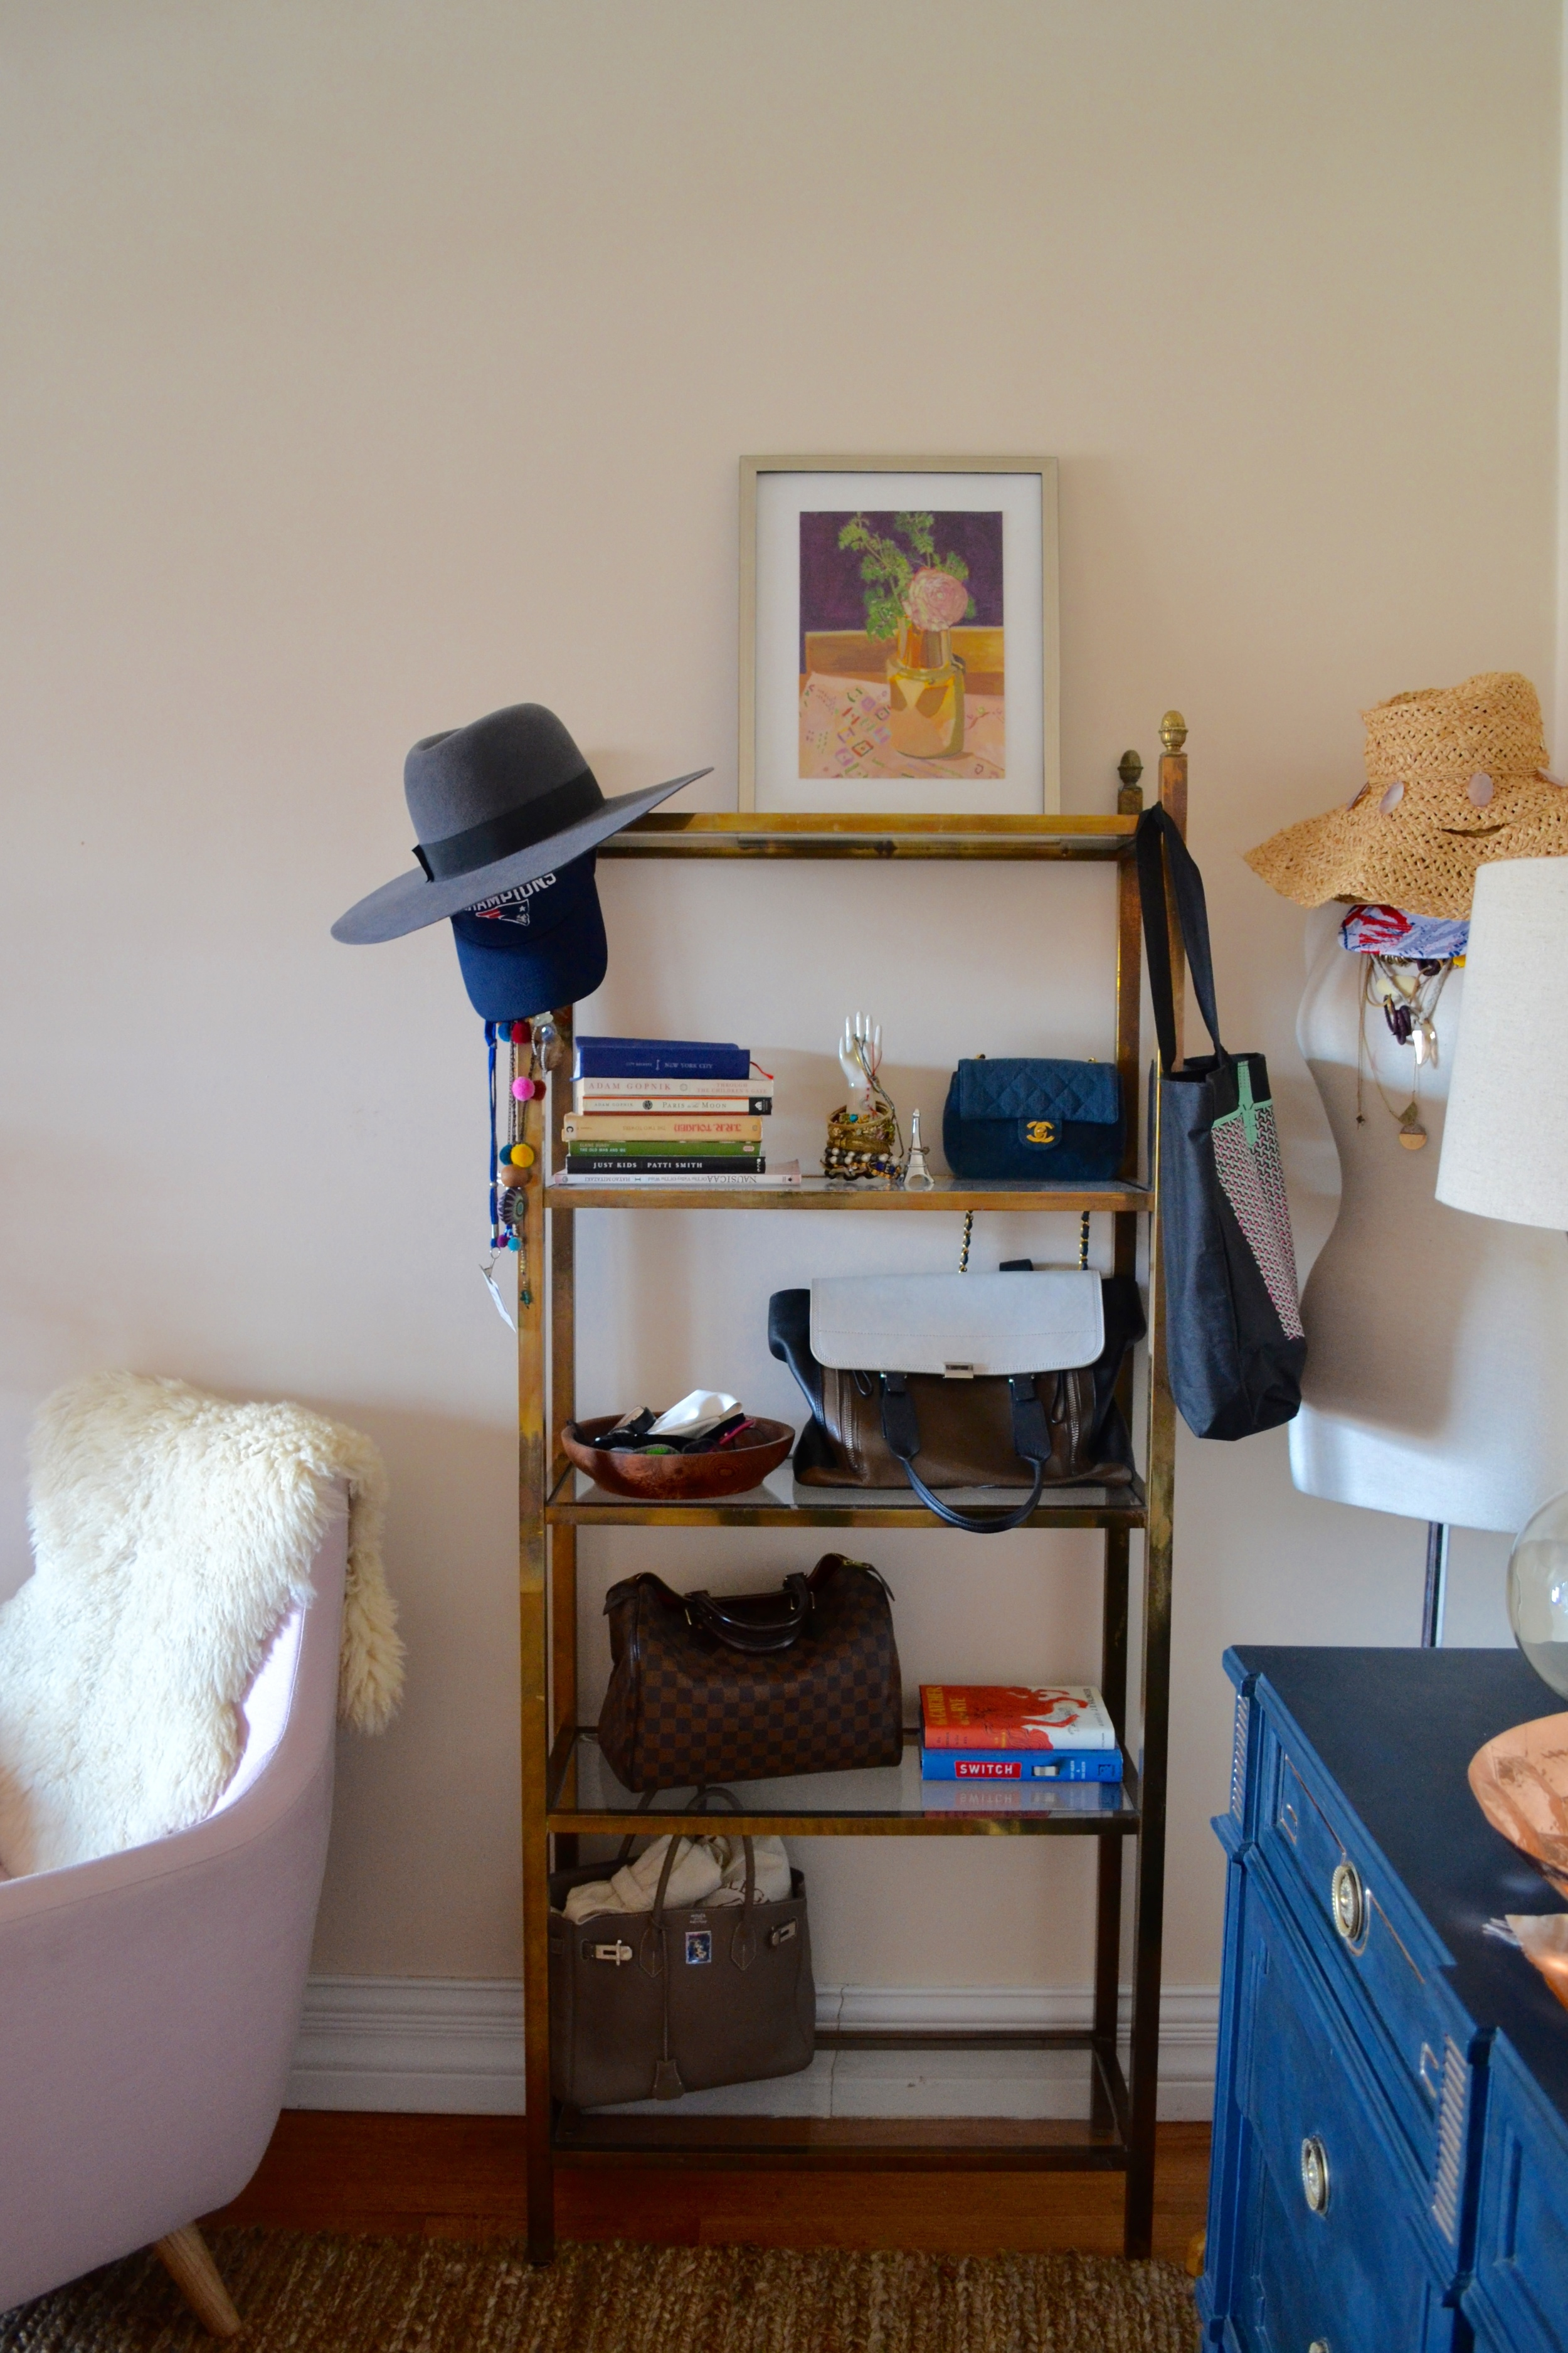 The brass etagere is a vintage find, along with some of the purses and accessories on display!